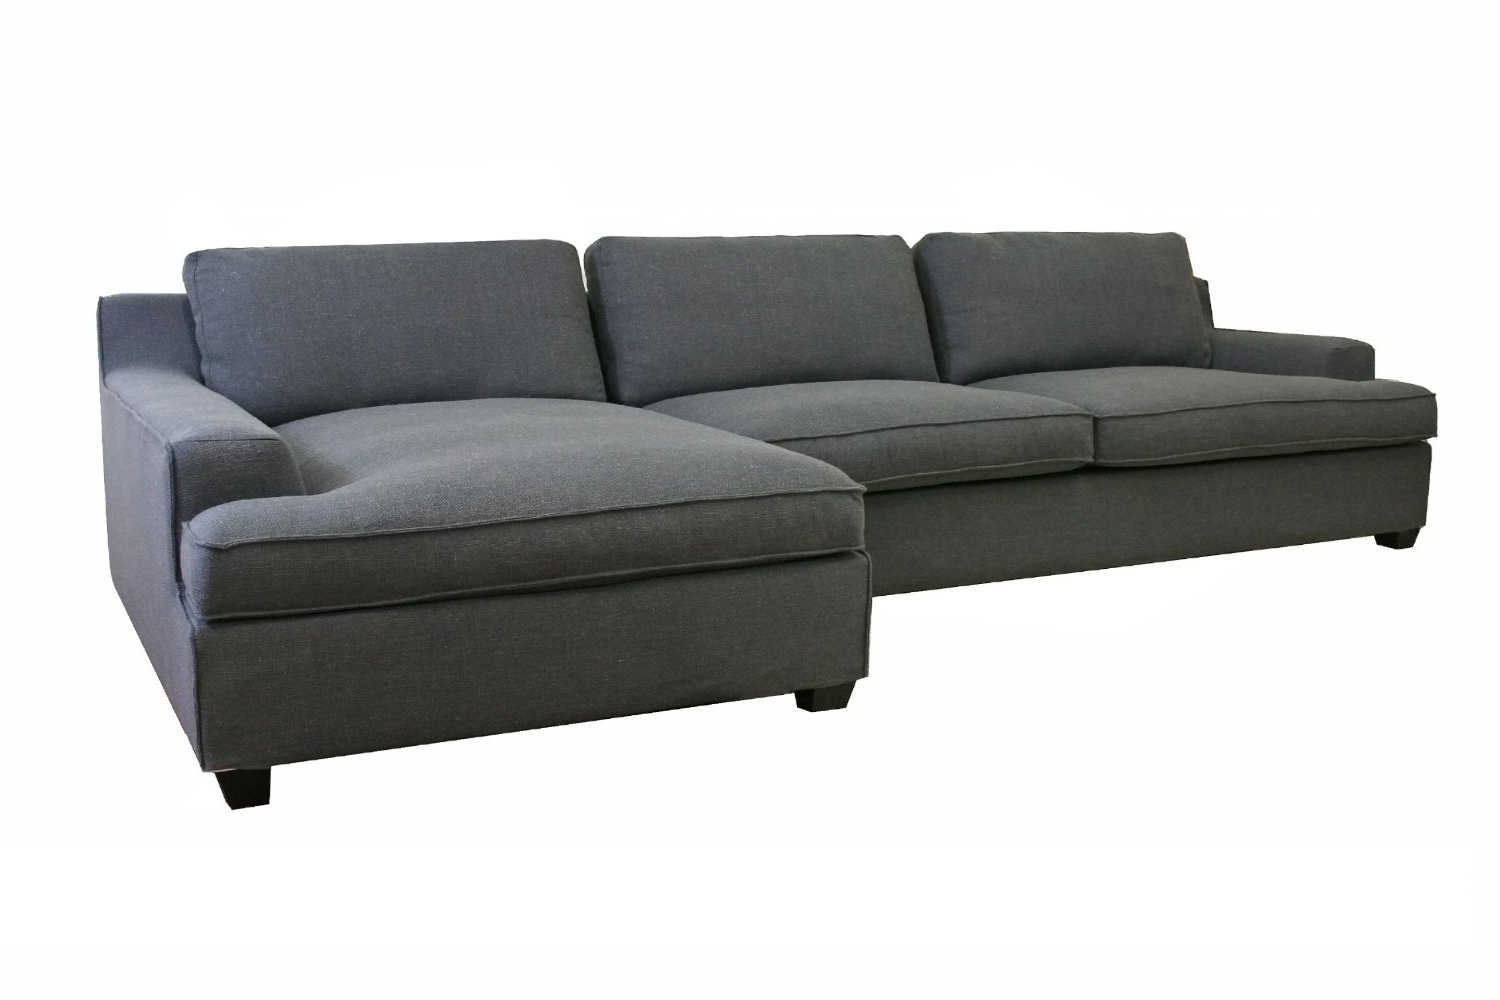 Most Popular Leather Loveseat With Chaise 72 Inch Sofa Sectional Sleeper Sofa Intended For Sectional Sleeper Sofas With Chaise (View 6 of 15)